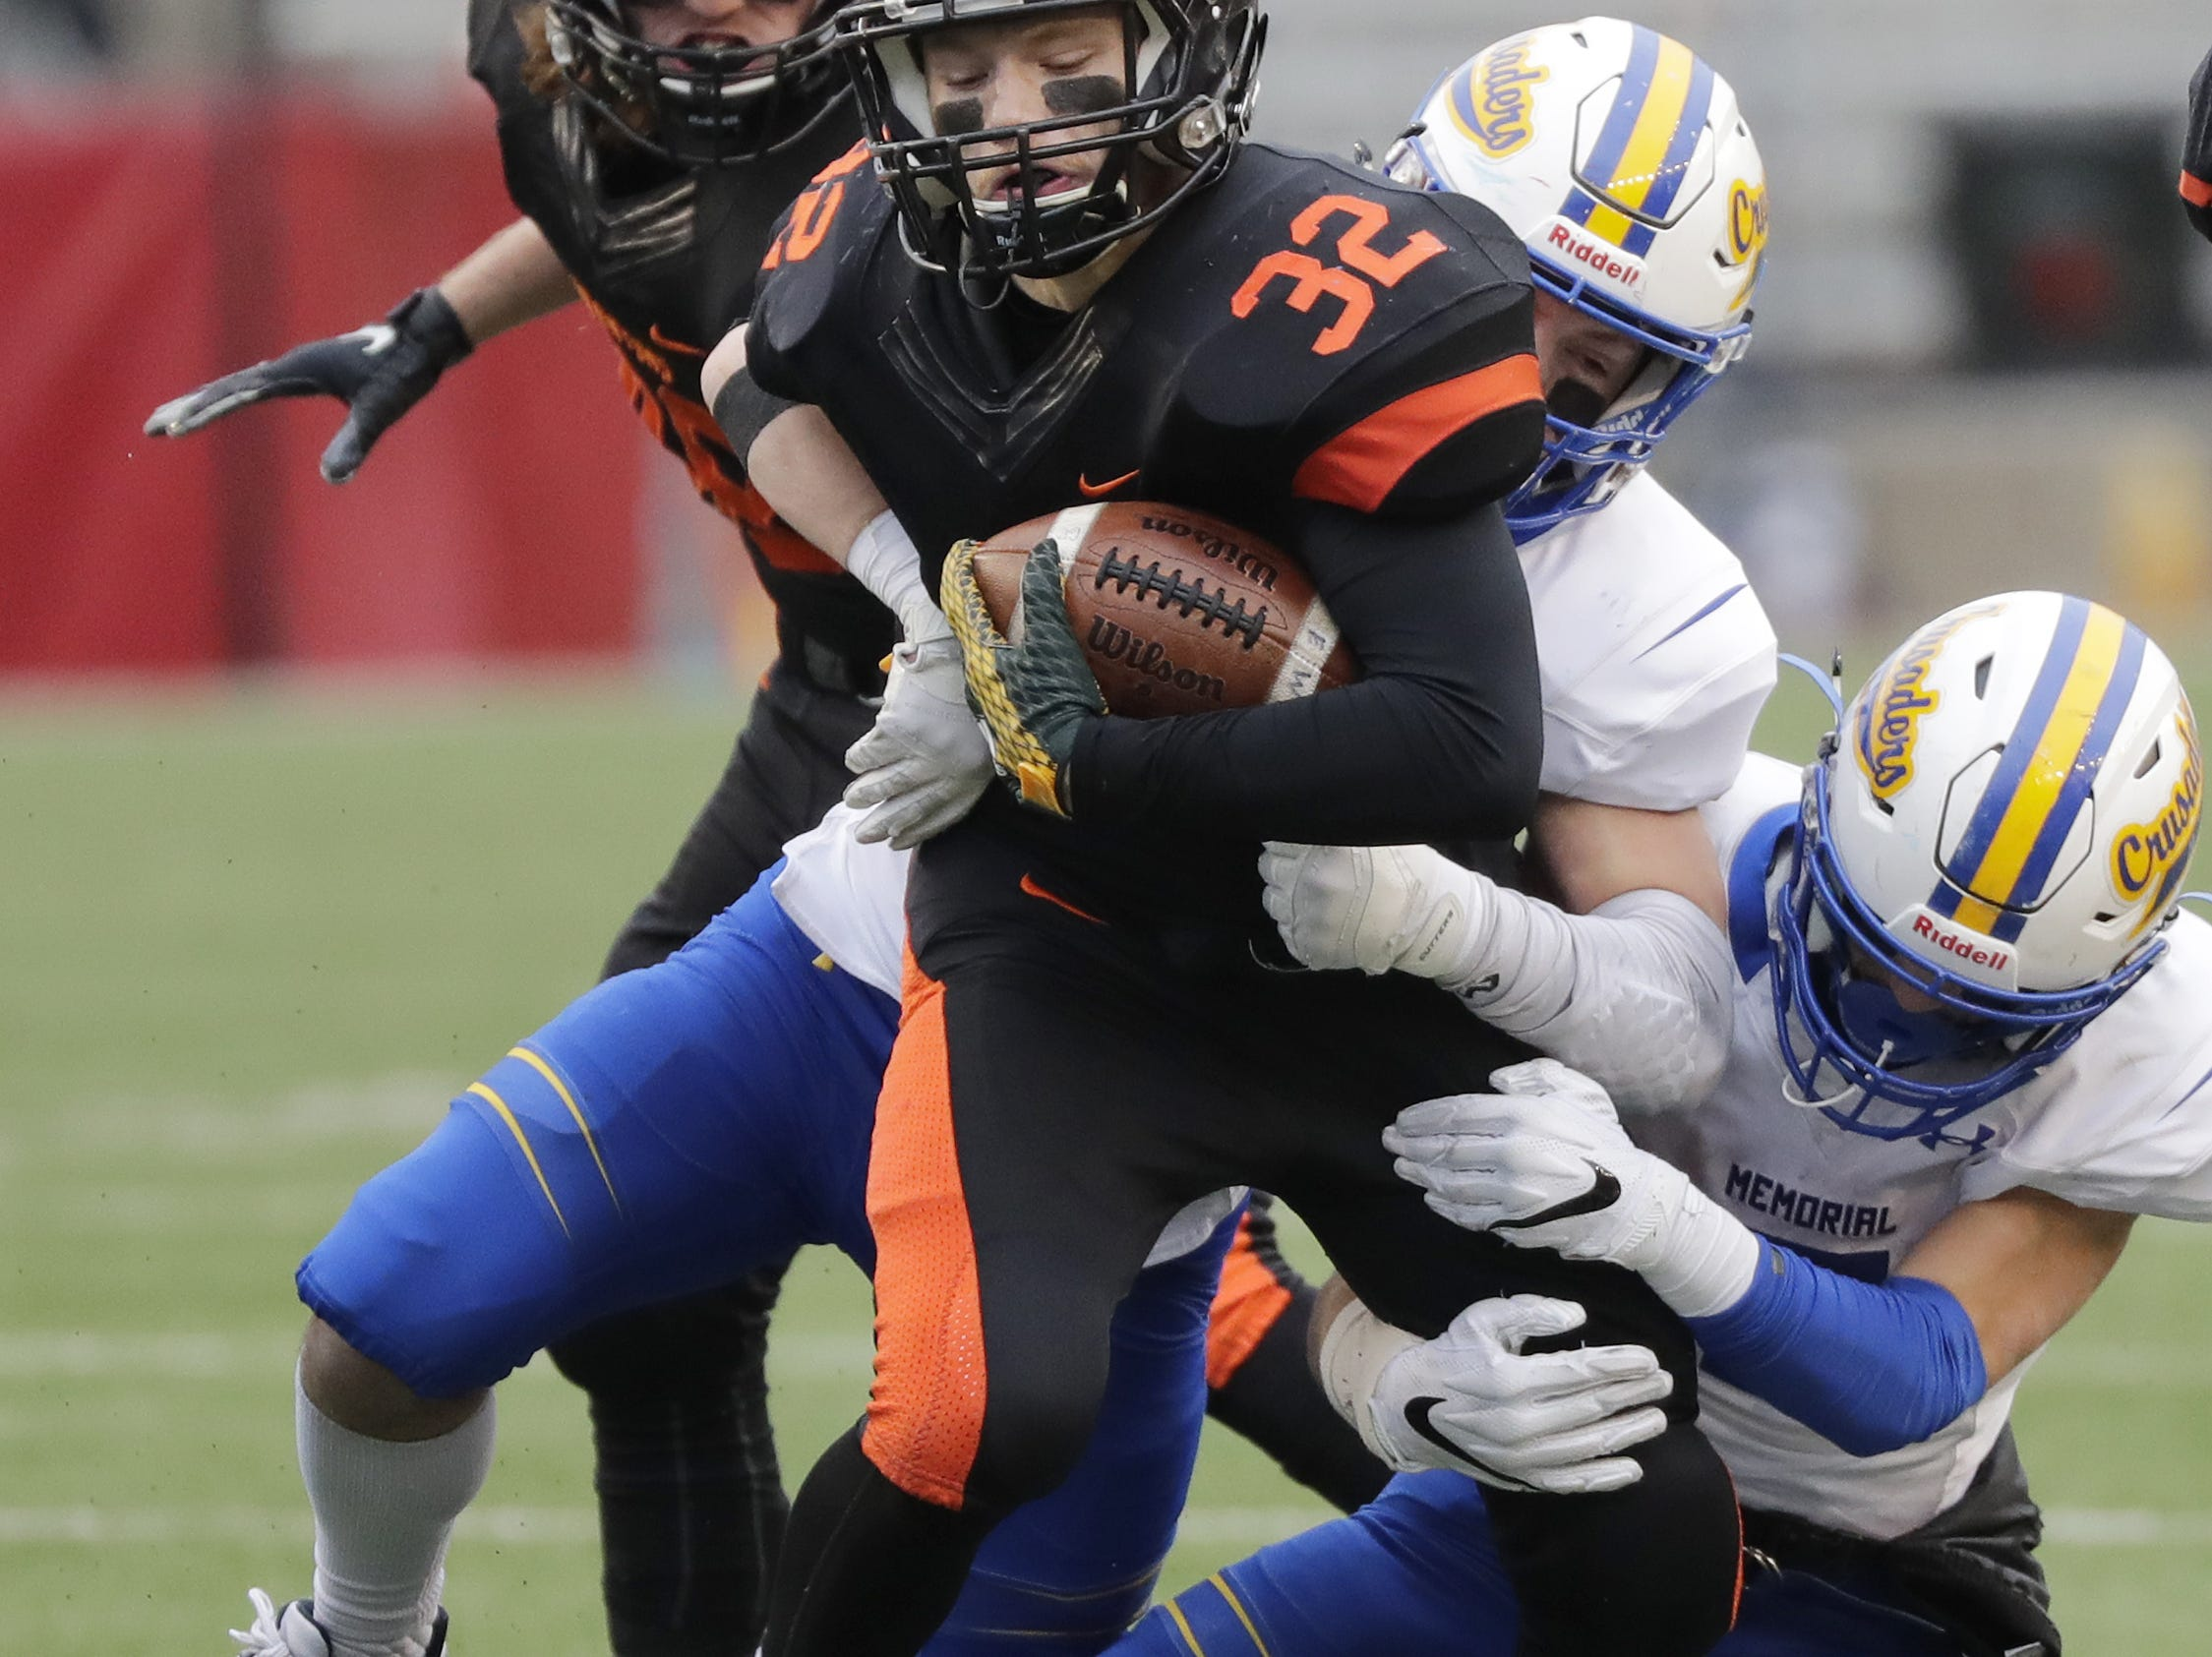 West De Pere's Evan Frisque (32) is tackled against Catholic Memorial in the WIAA Division 3 championship game at Camp Randall Stadium on Friday, November 16, 2018 in Madison, Wis.